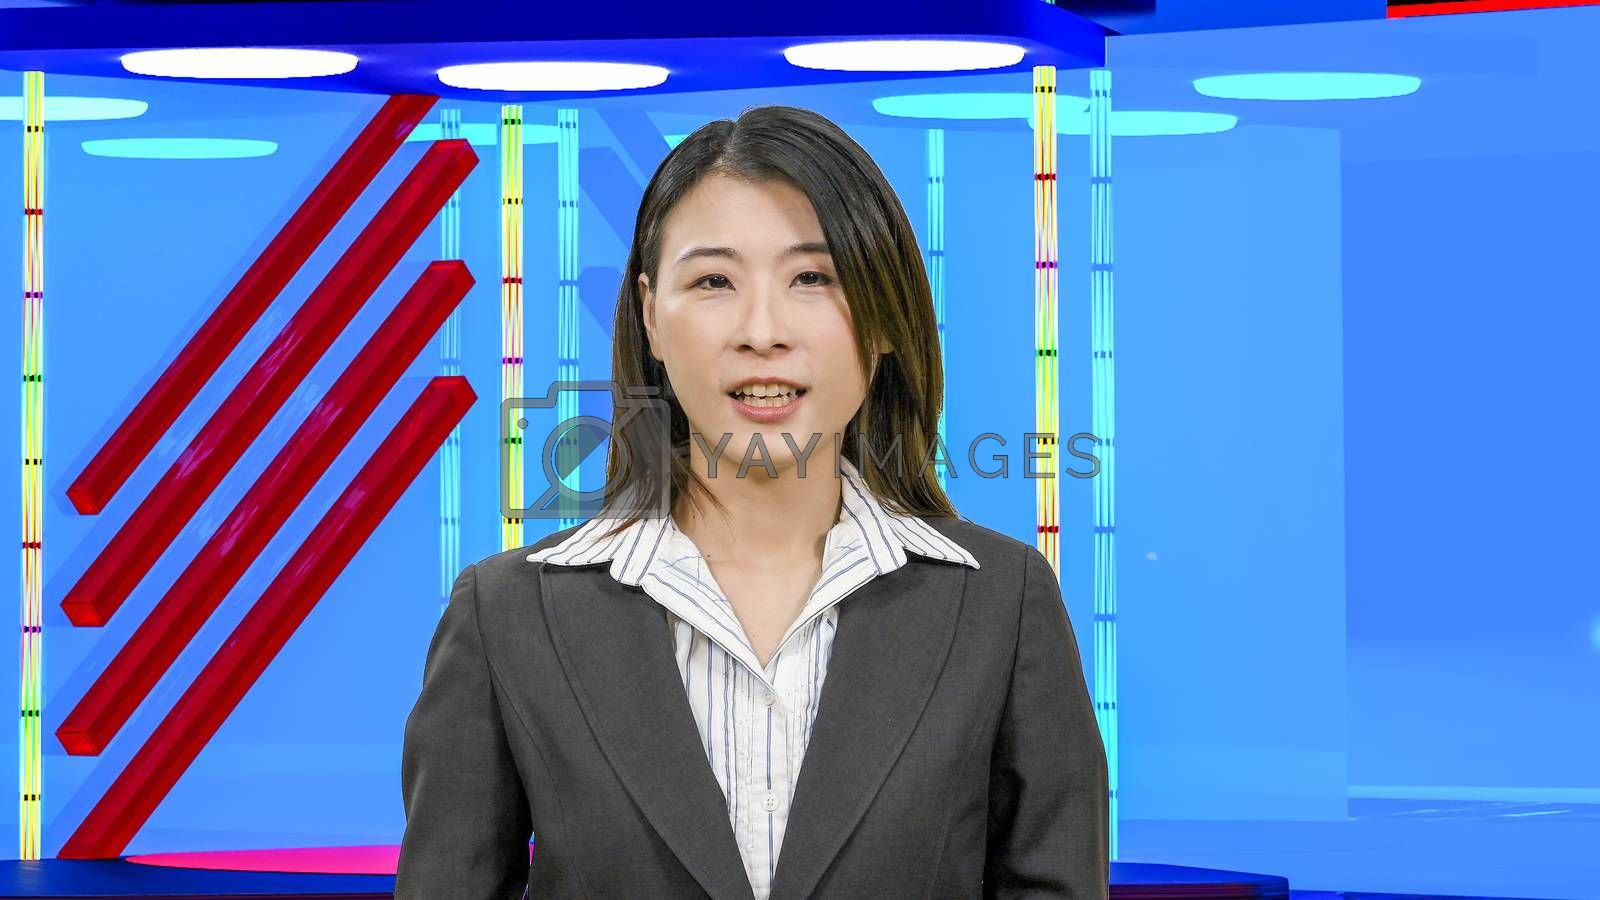 Female Asian News anchorwoman in virtual TV studio, original des by Images By Kenny